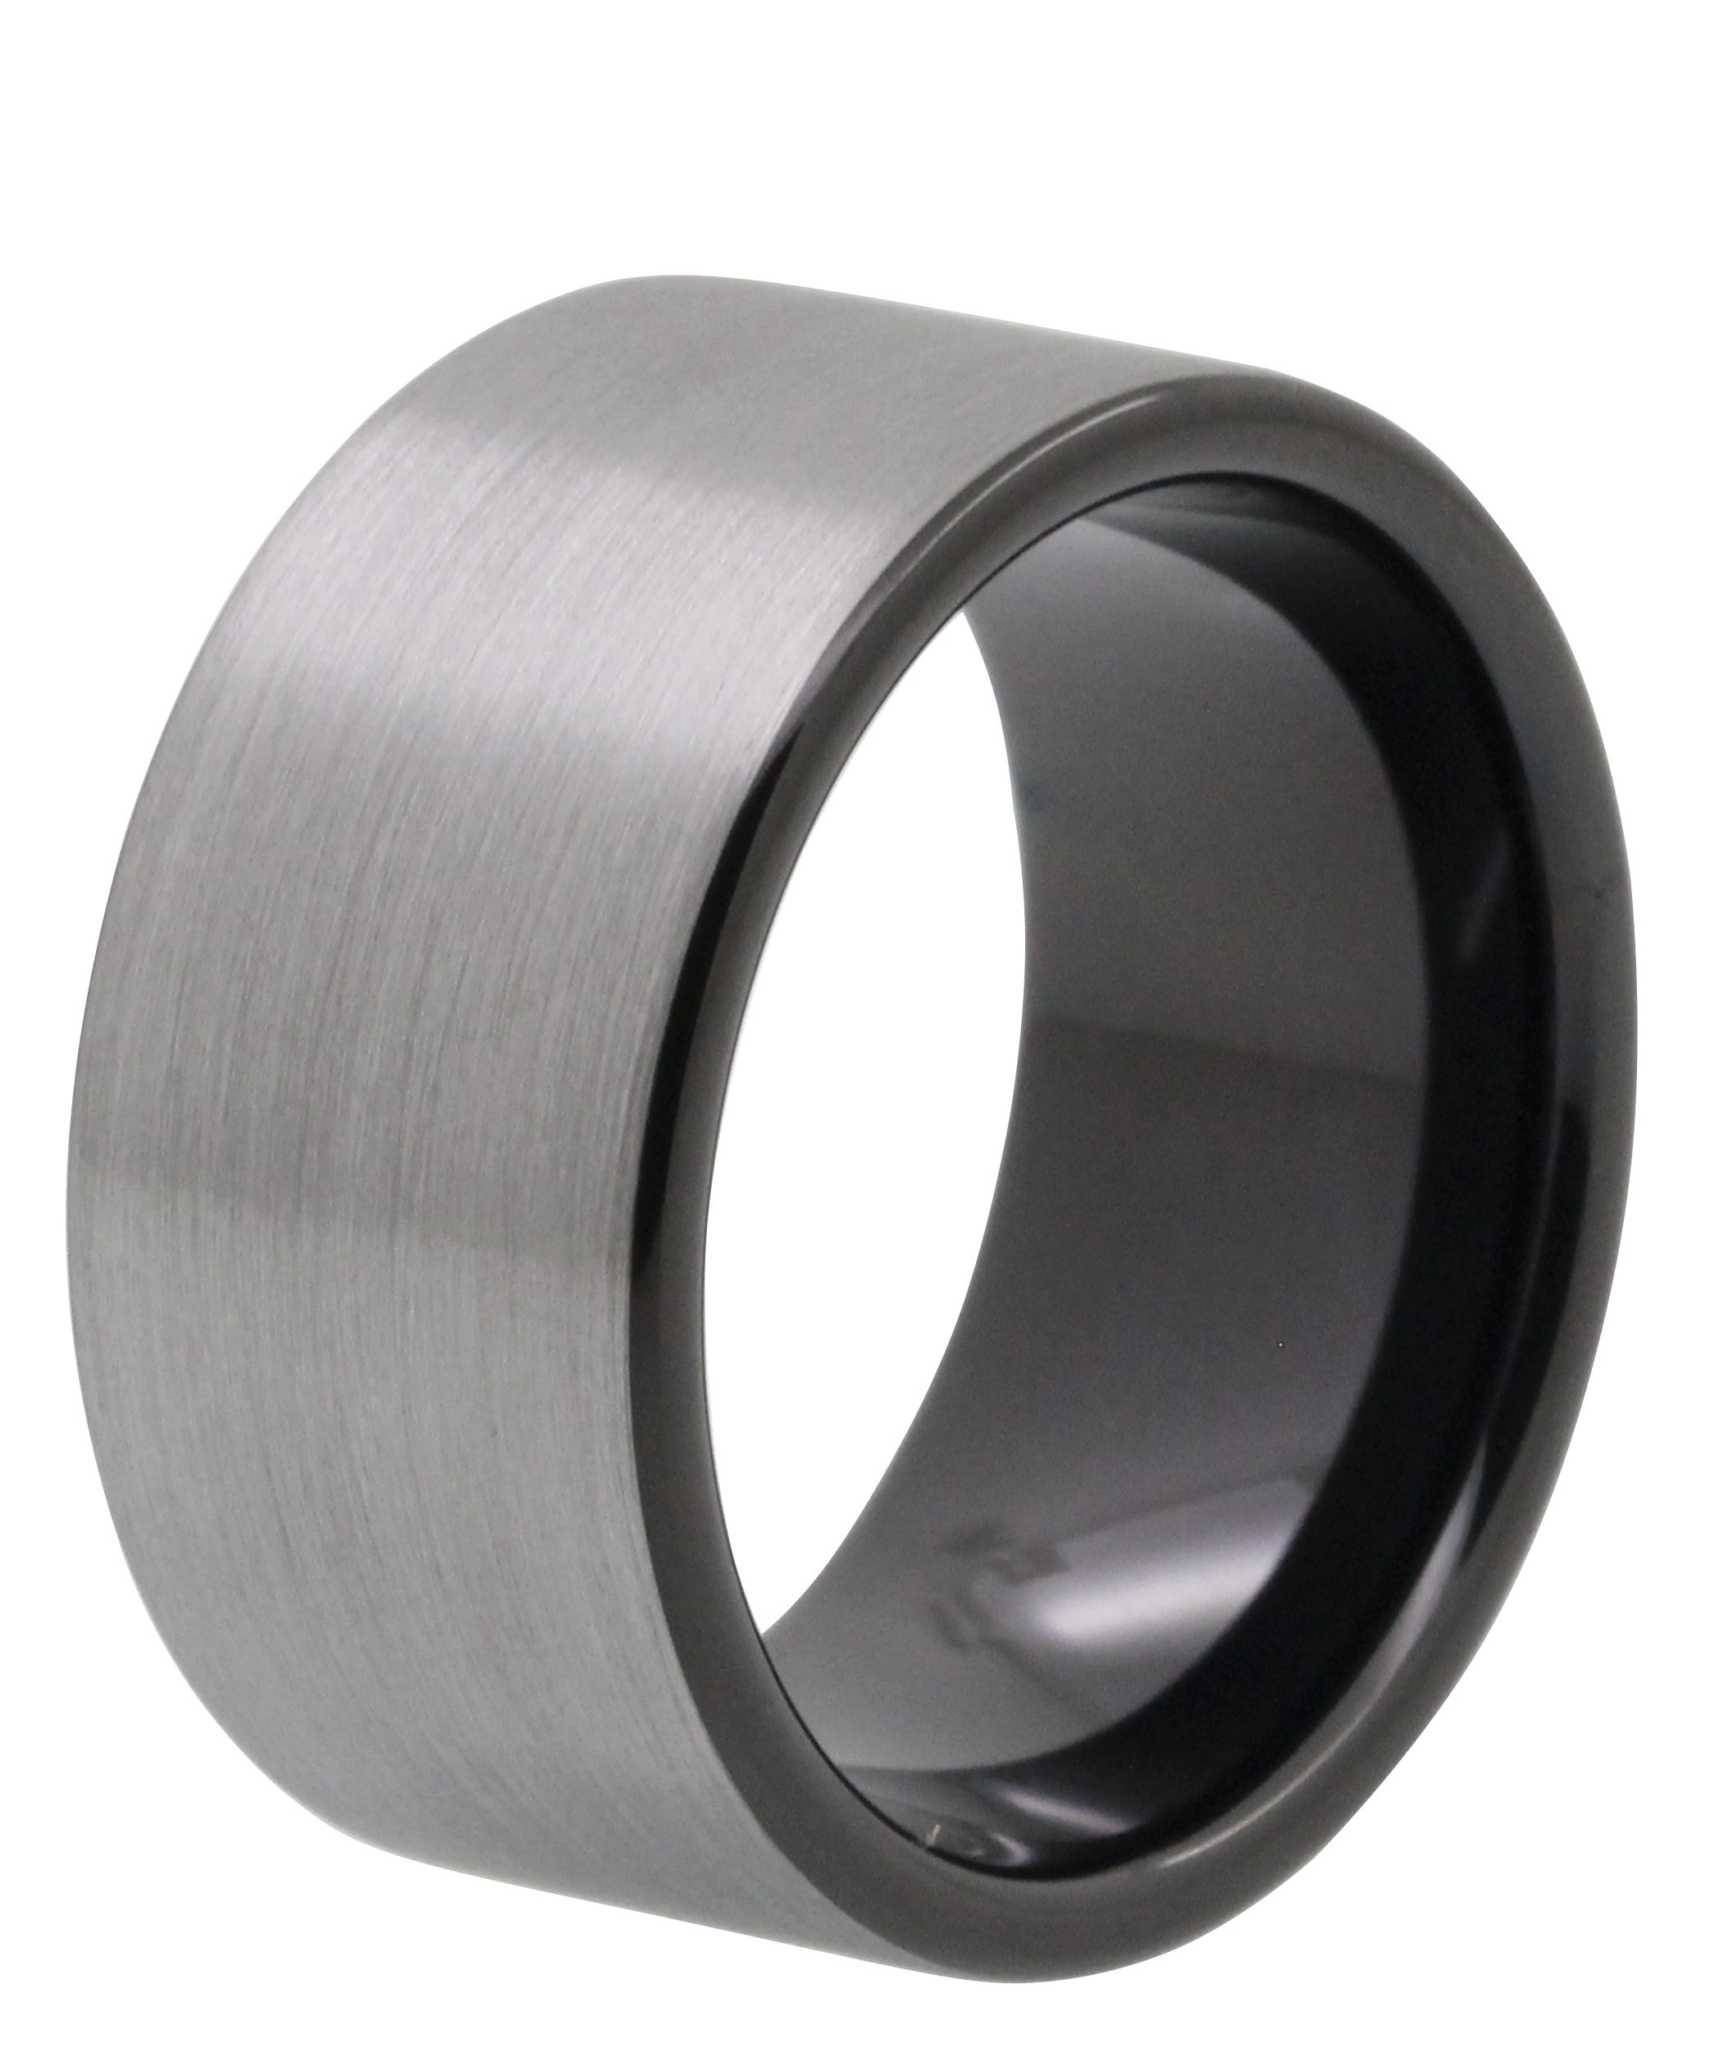 15 ideas of tungsten carbide wedding bands pros and cons. Black Bedroom Furniture Sets. Home Design Ideas